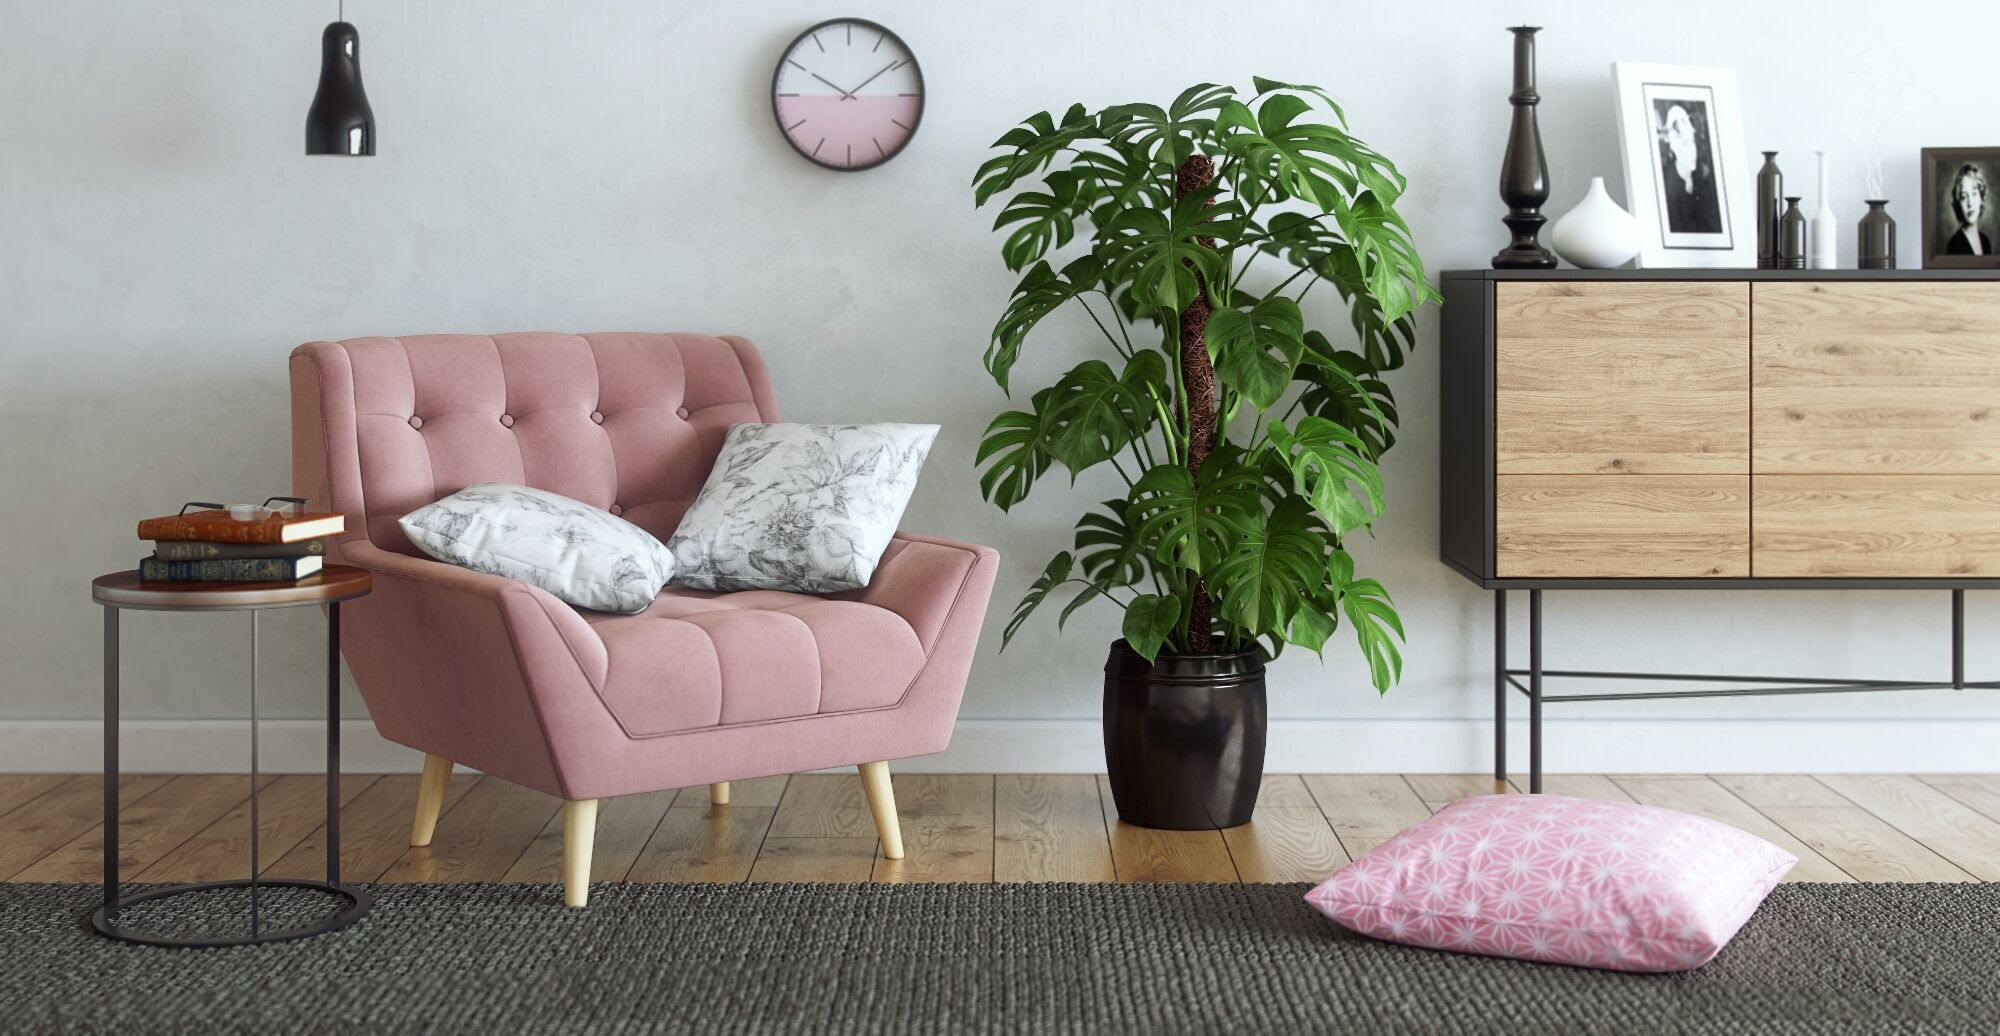 a designer pink chair with white throw pillows